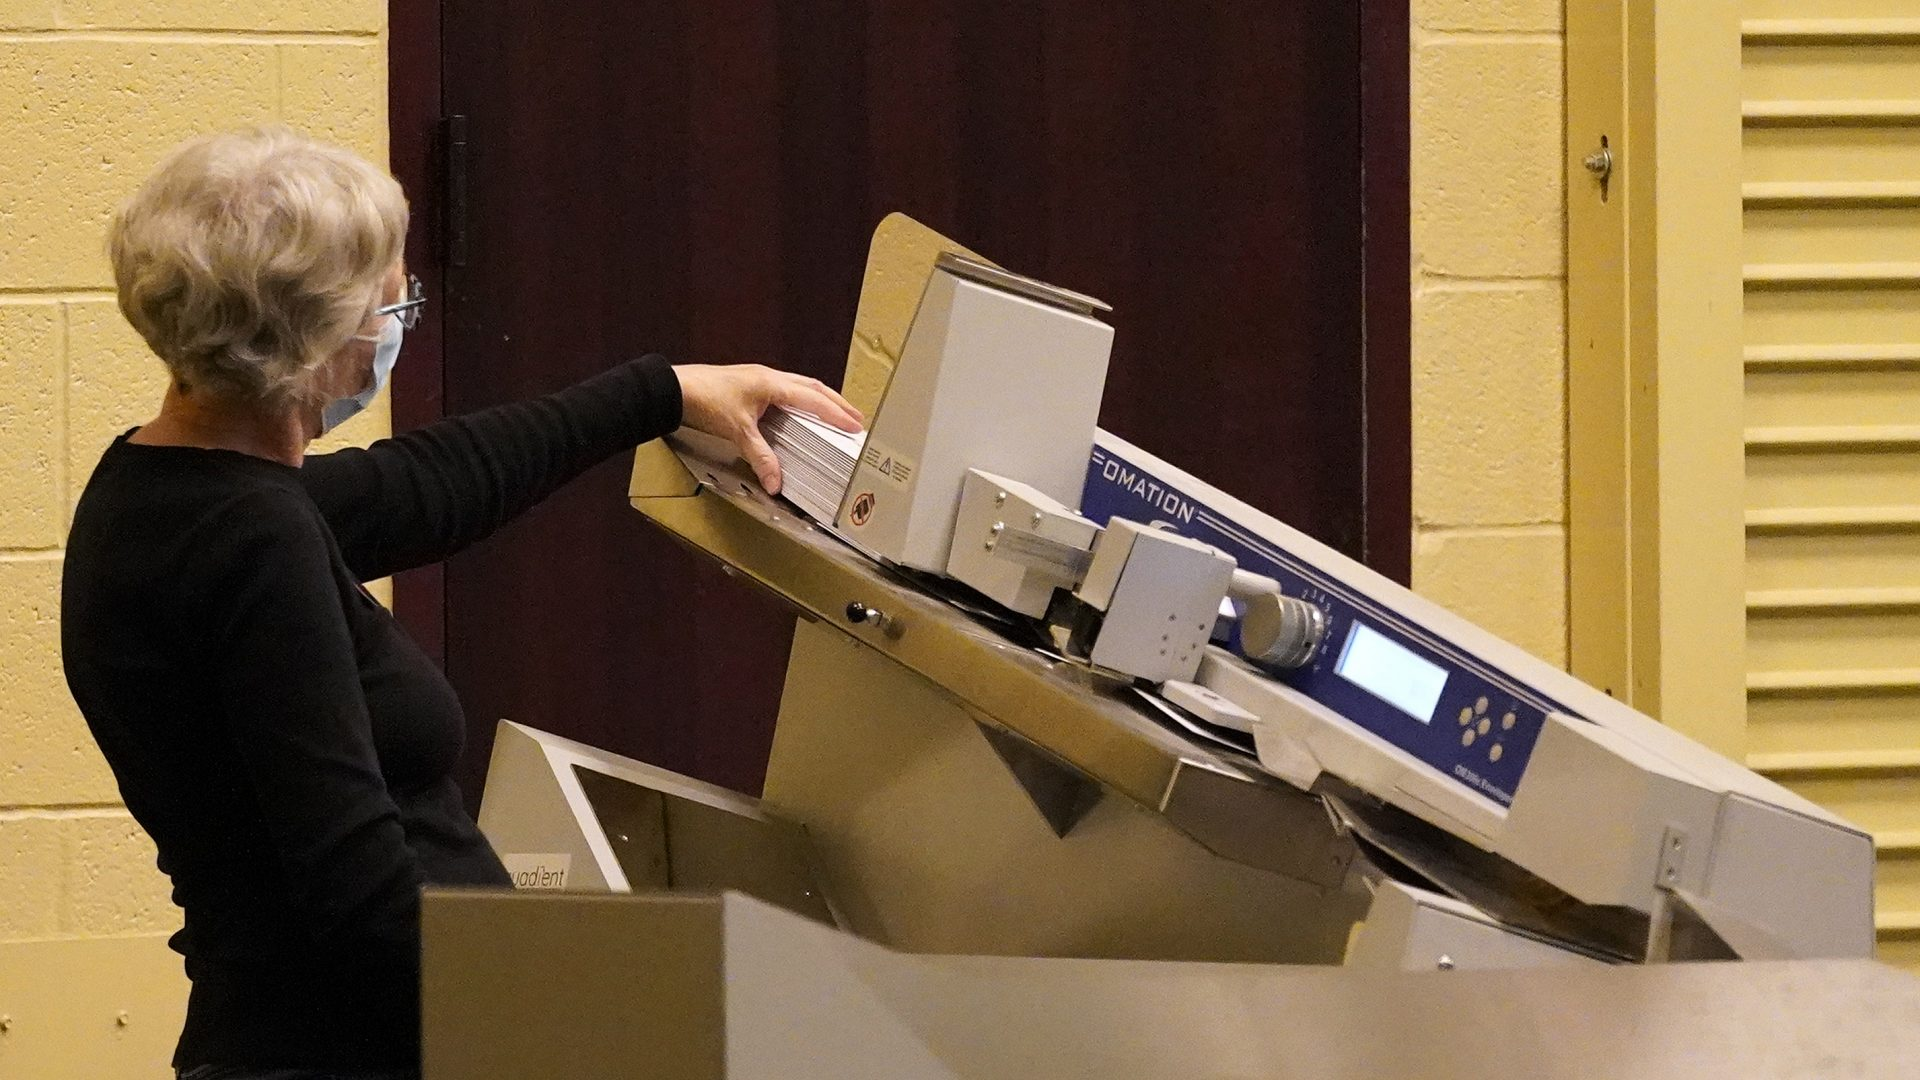 A worker scans mail-in ballots through a counting machine before they are counted, Wednesday, Nov. 4, 2020, at the convention center in Lancaster, Pa., following Tuesday's election.